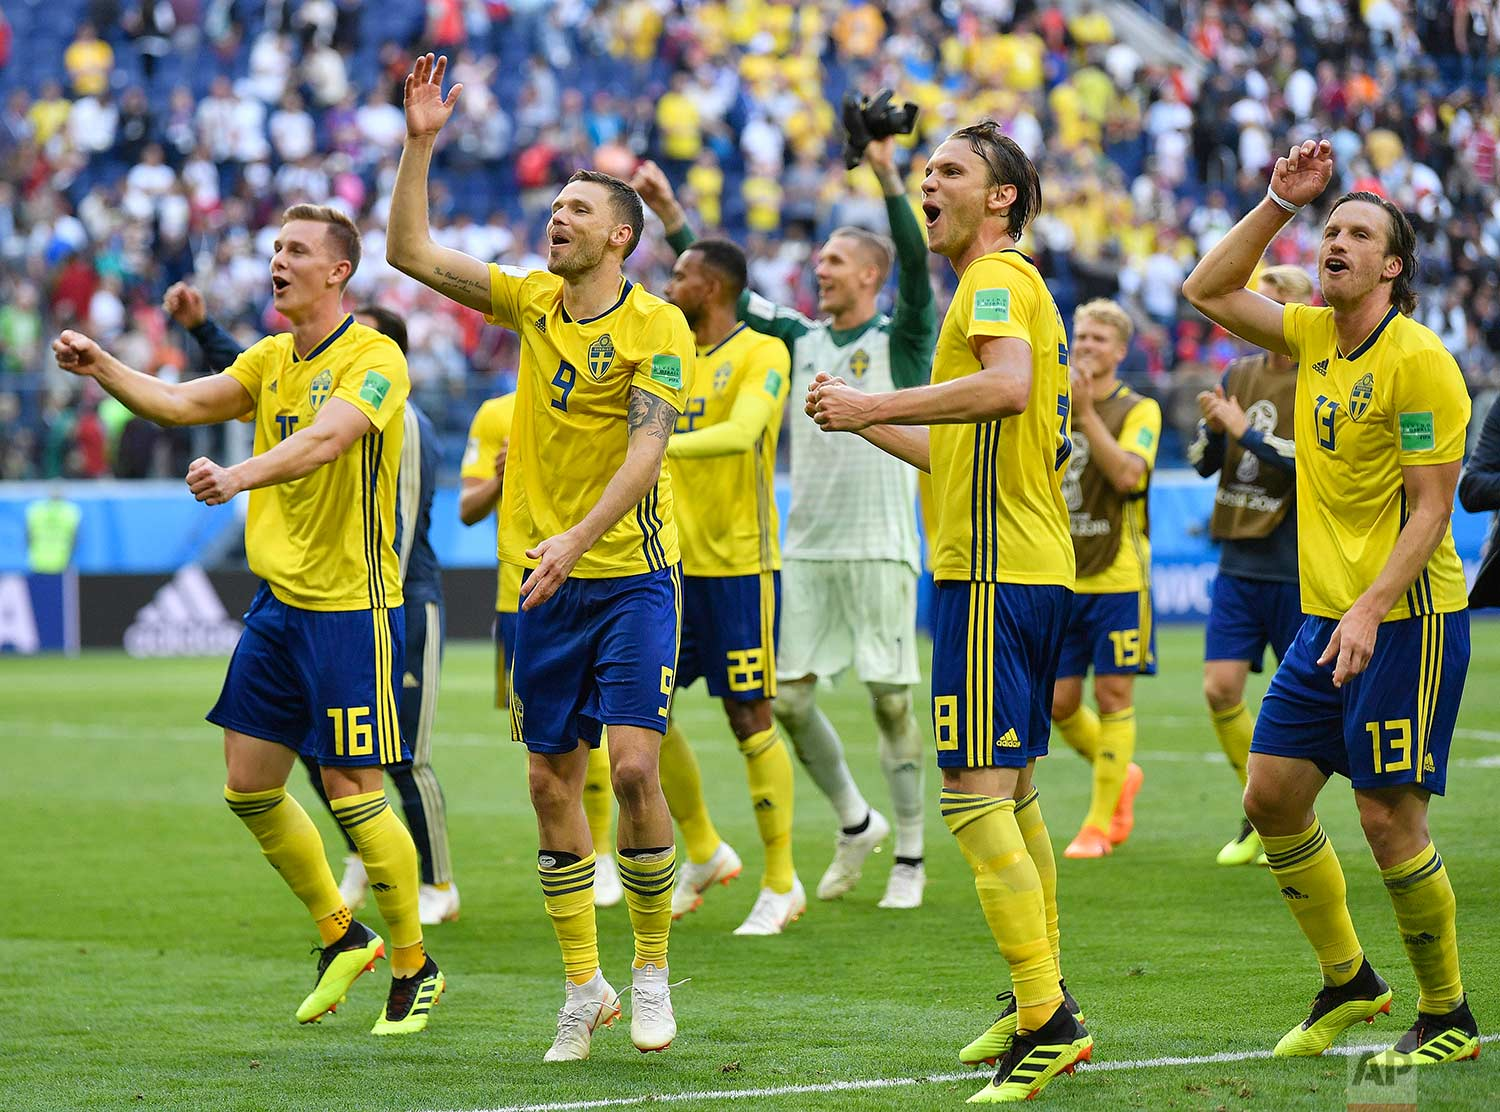 Sweden teammates celebrate after winning the round of 16 match between Switzerland and Sweden at the 2018 soccer World Cup in the St. Petersburg Stadium, in St. Petersburg, Russia, Tuesday, July 3, 2018. (AP Photo/Martin Meissner)